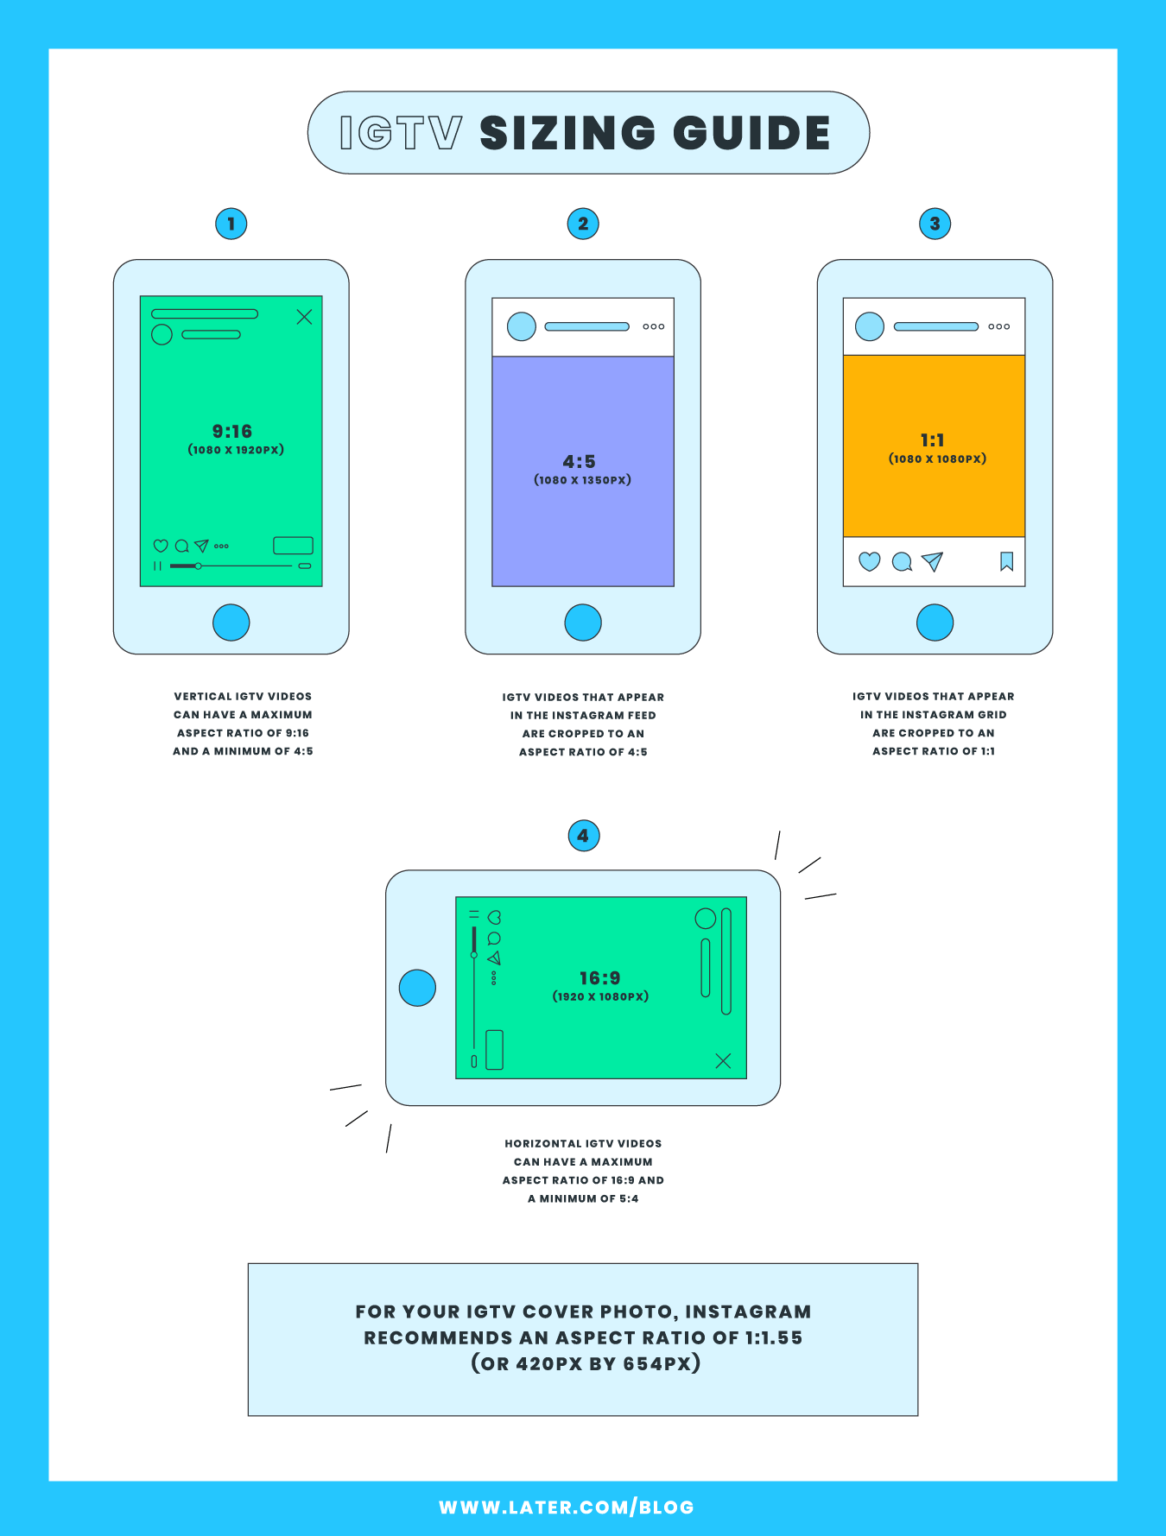 igtvsizeguide-infographic-1166x1536.png